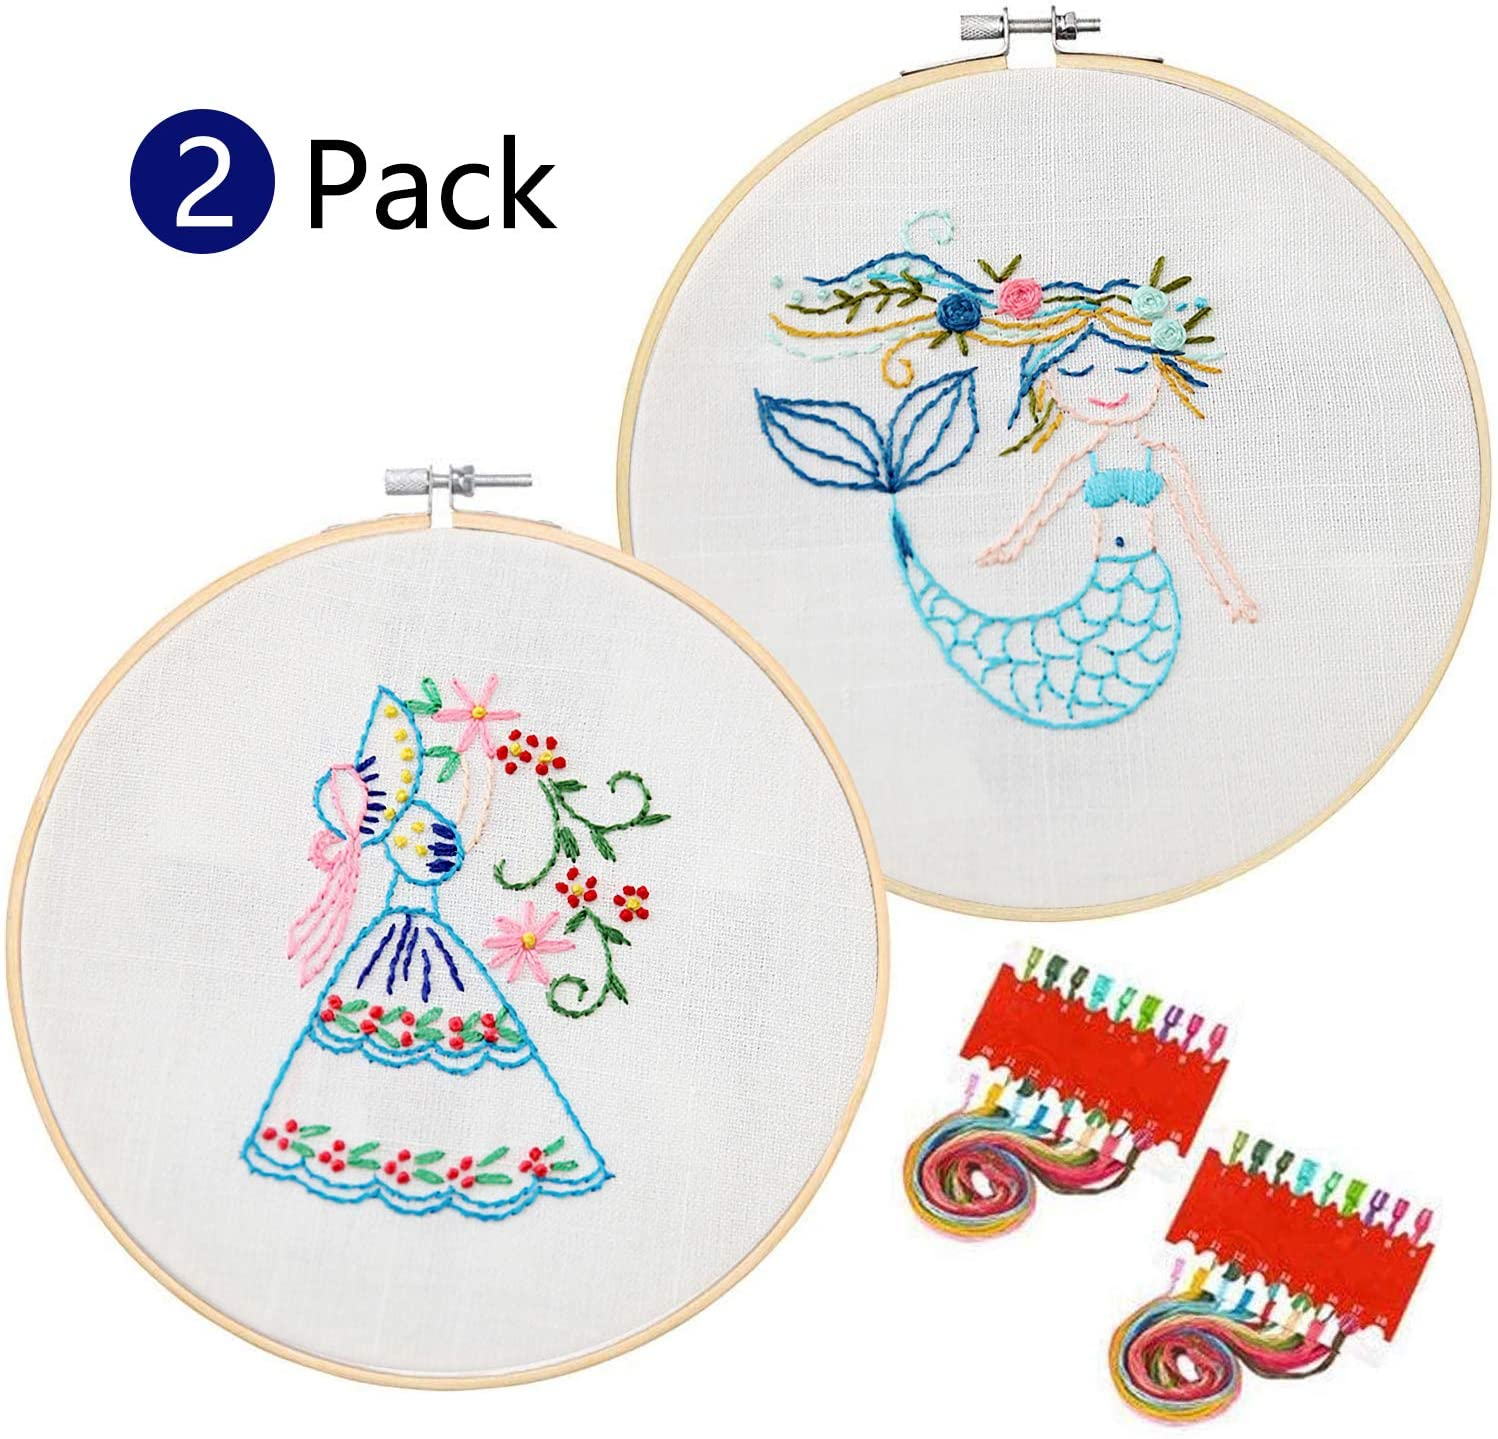 ZYNERY 2-Set Kids Embroidery Kit for Beginner Starter Including Embroidery Cloth, Embroidery Hoop, Needles, Color Threads(The Legend of The sea and Flower Skirt Girl)